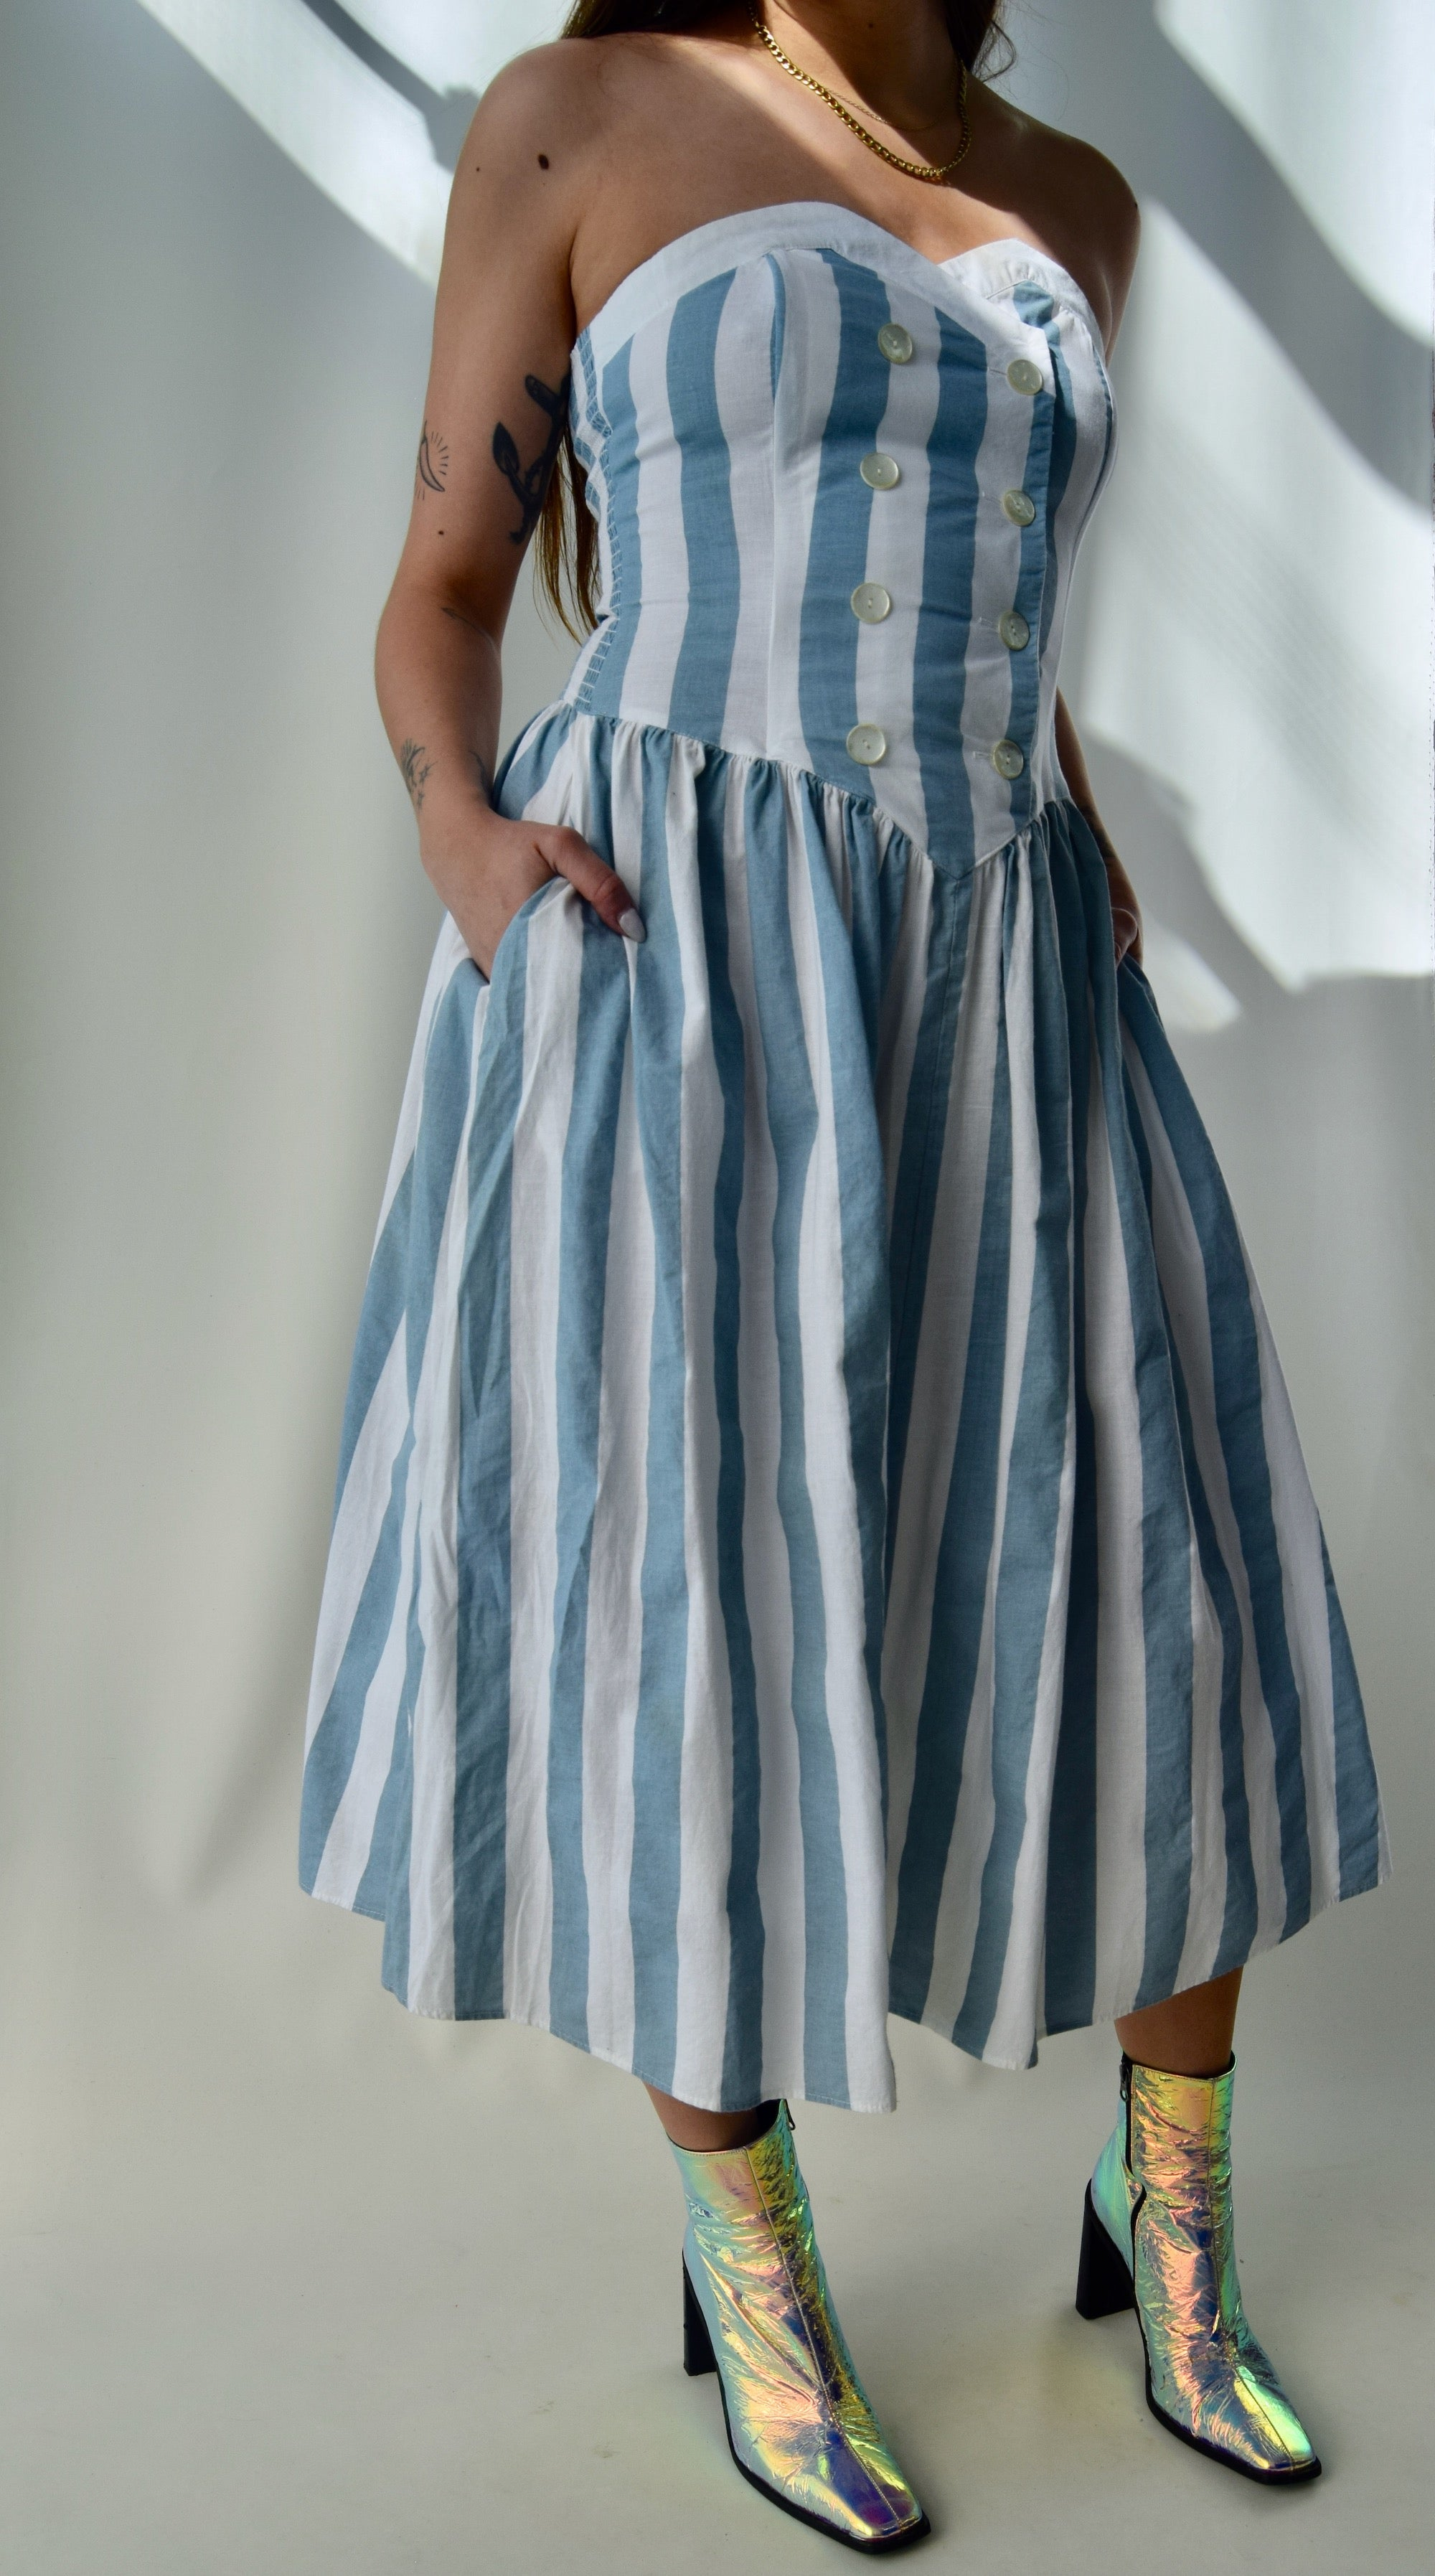 Powder Blue Striped Sweetheart Summer Dress FREE SHIPPING TO THE U.S.